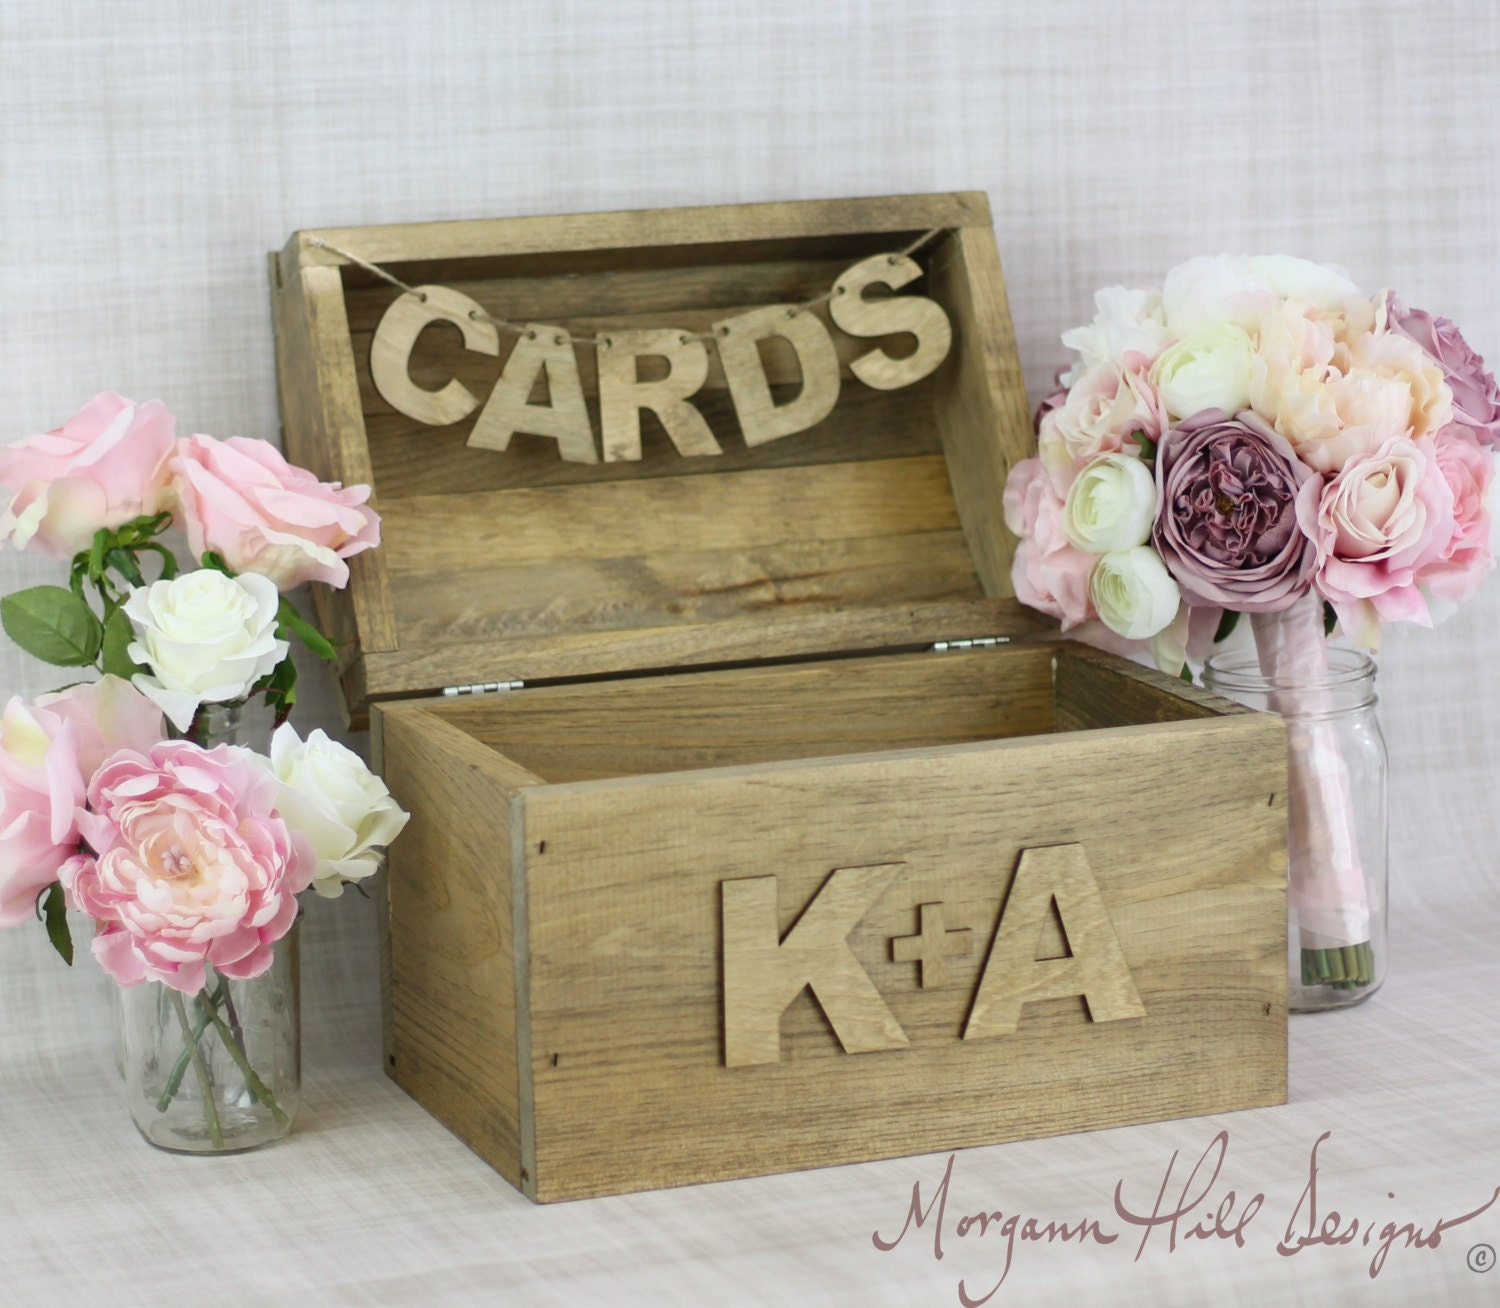 Card Box For Wedding: Personalized Rustic Card Box Country Wedding Barn By